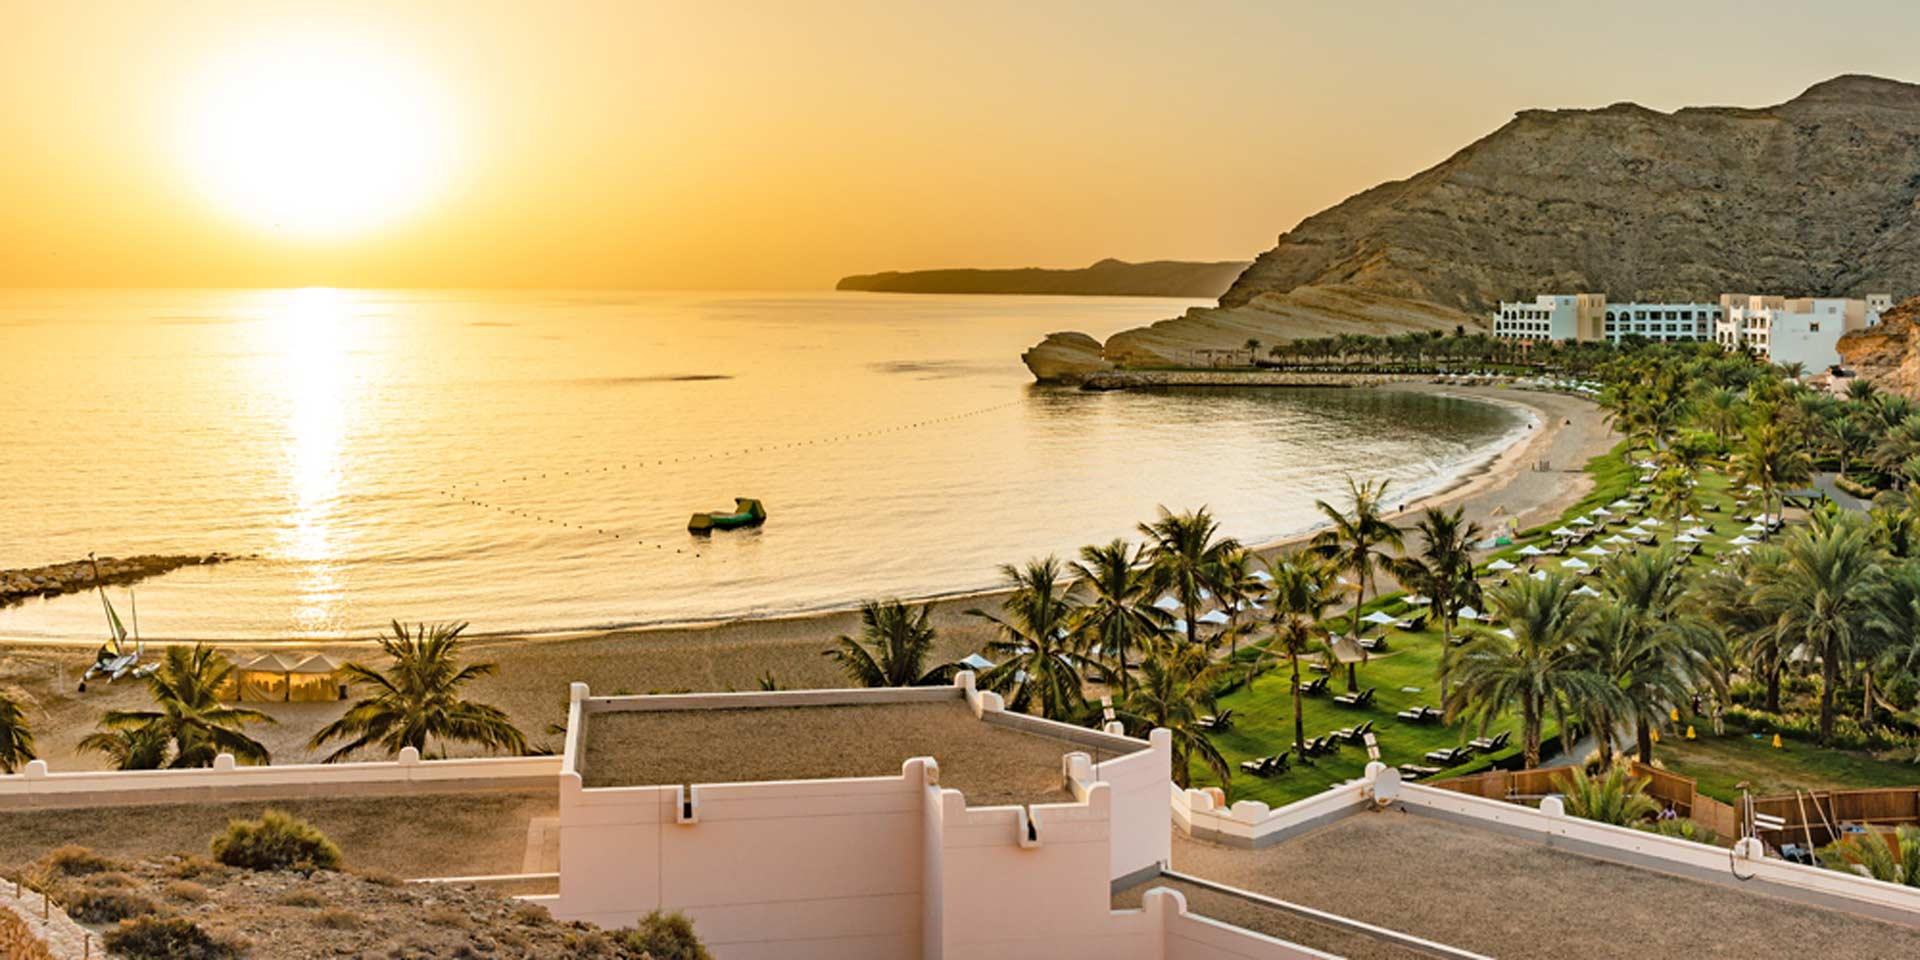 Design your perfect Oman honeymoon